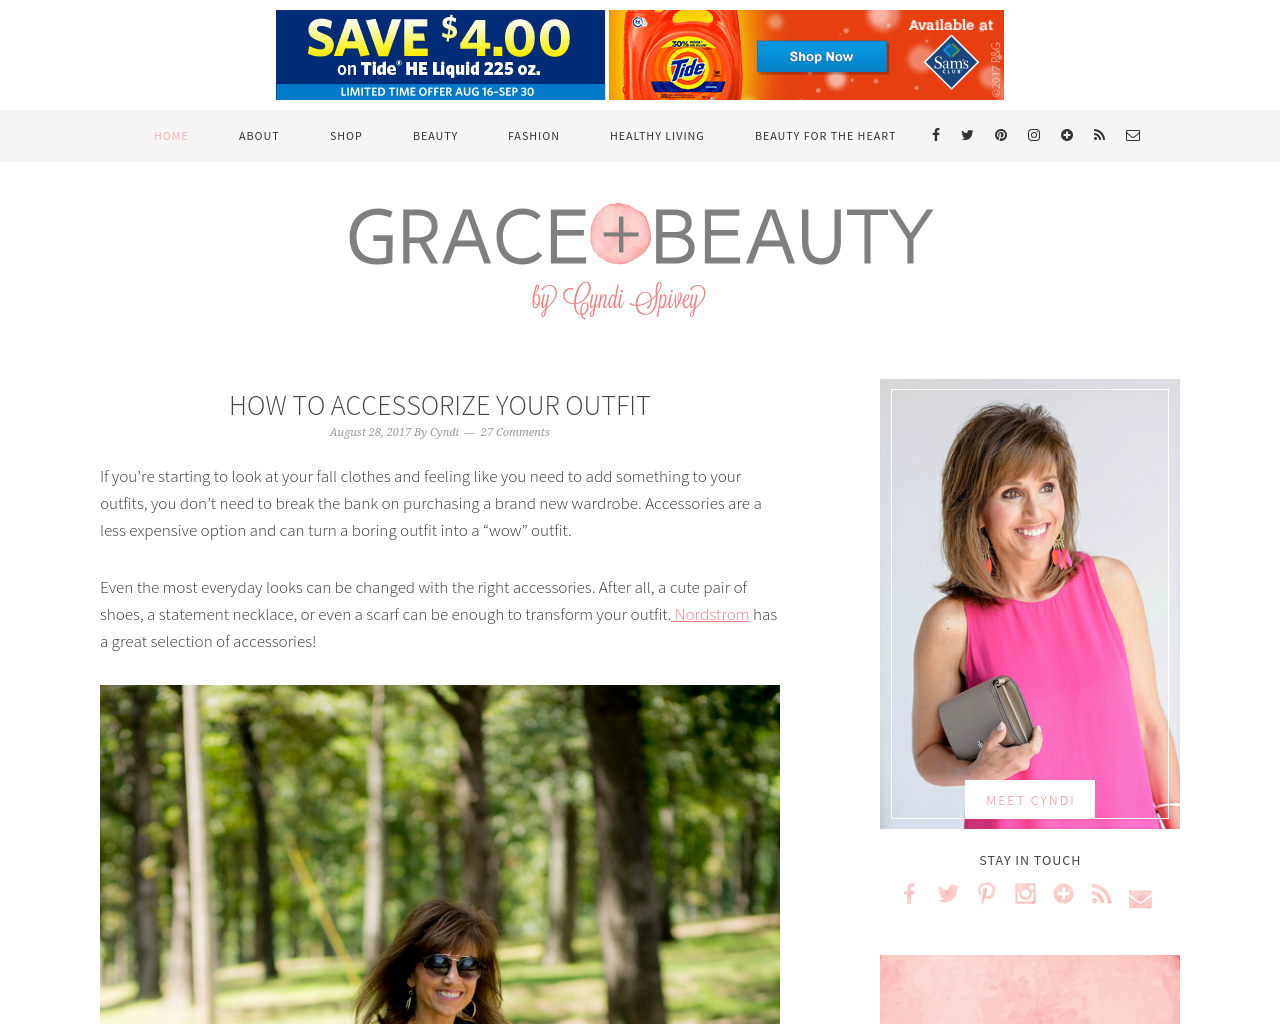 Walking-In-Grace-&-Beauty-Advertising-Reviews-Pricing